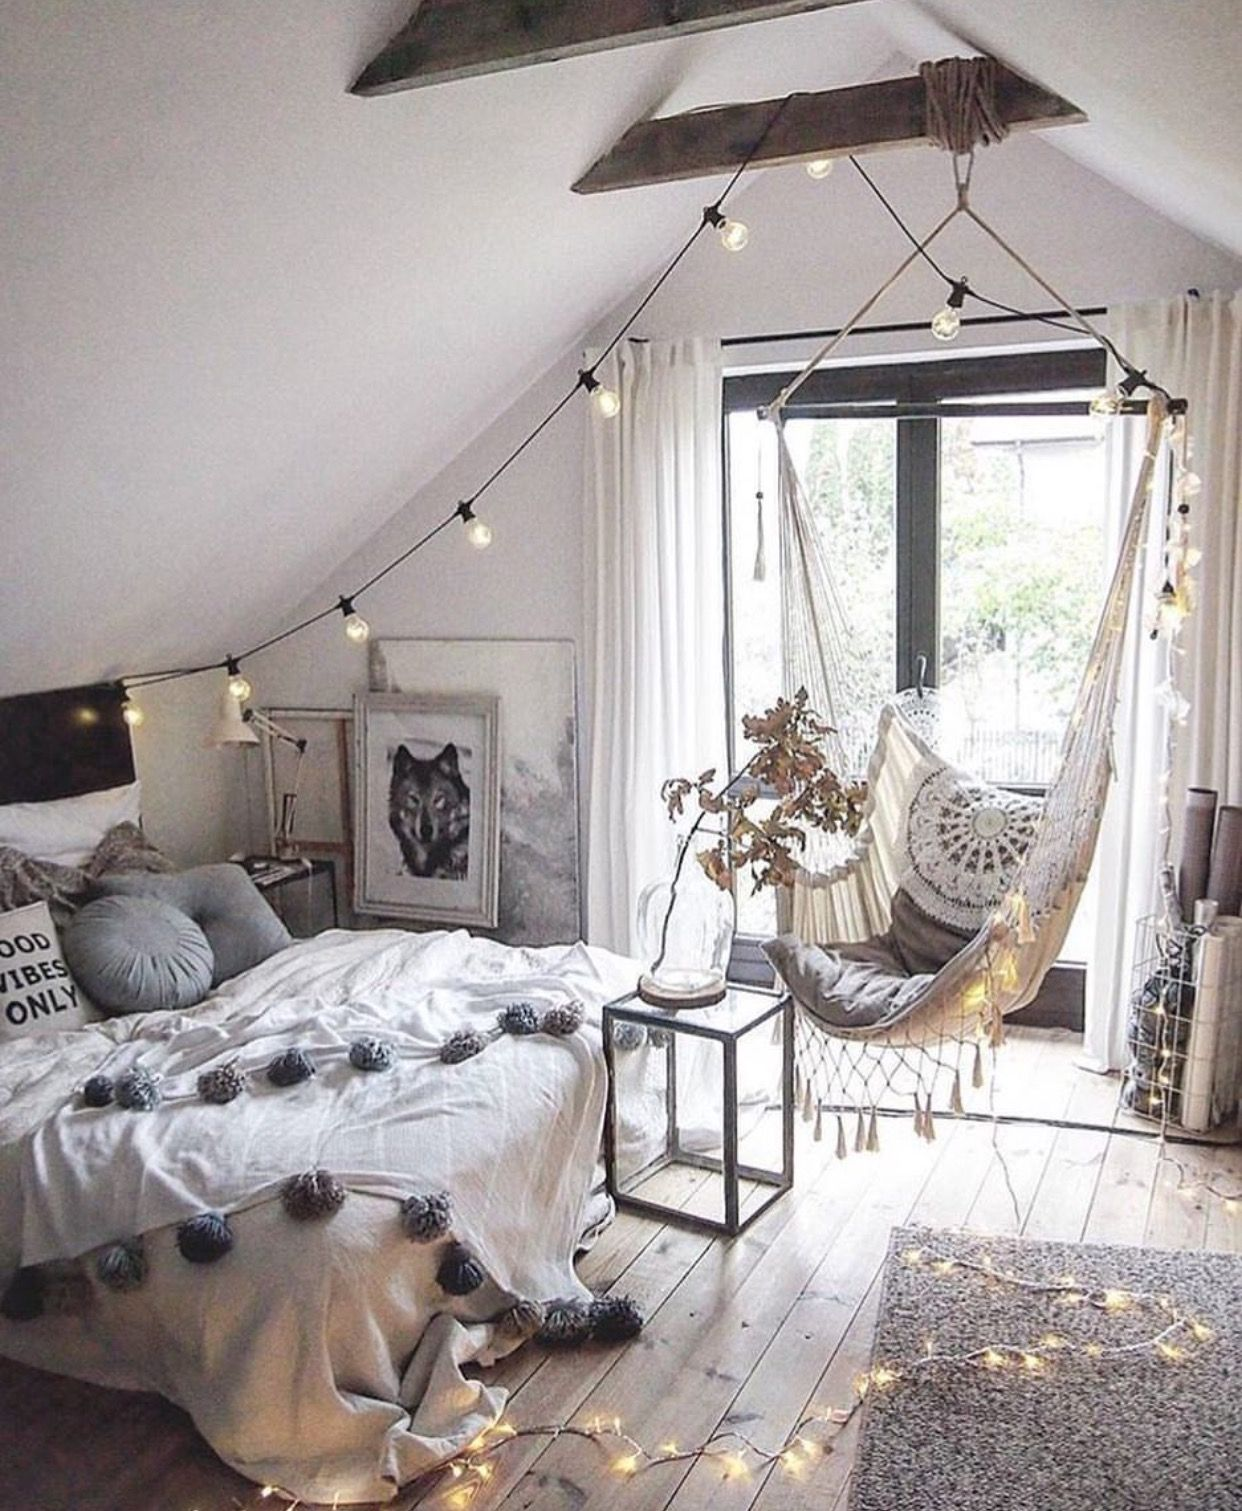 Pin By Aidyn Mahaffey On That Dream Room In 2018 Pinterest